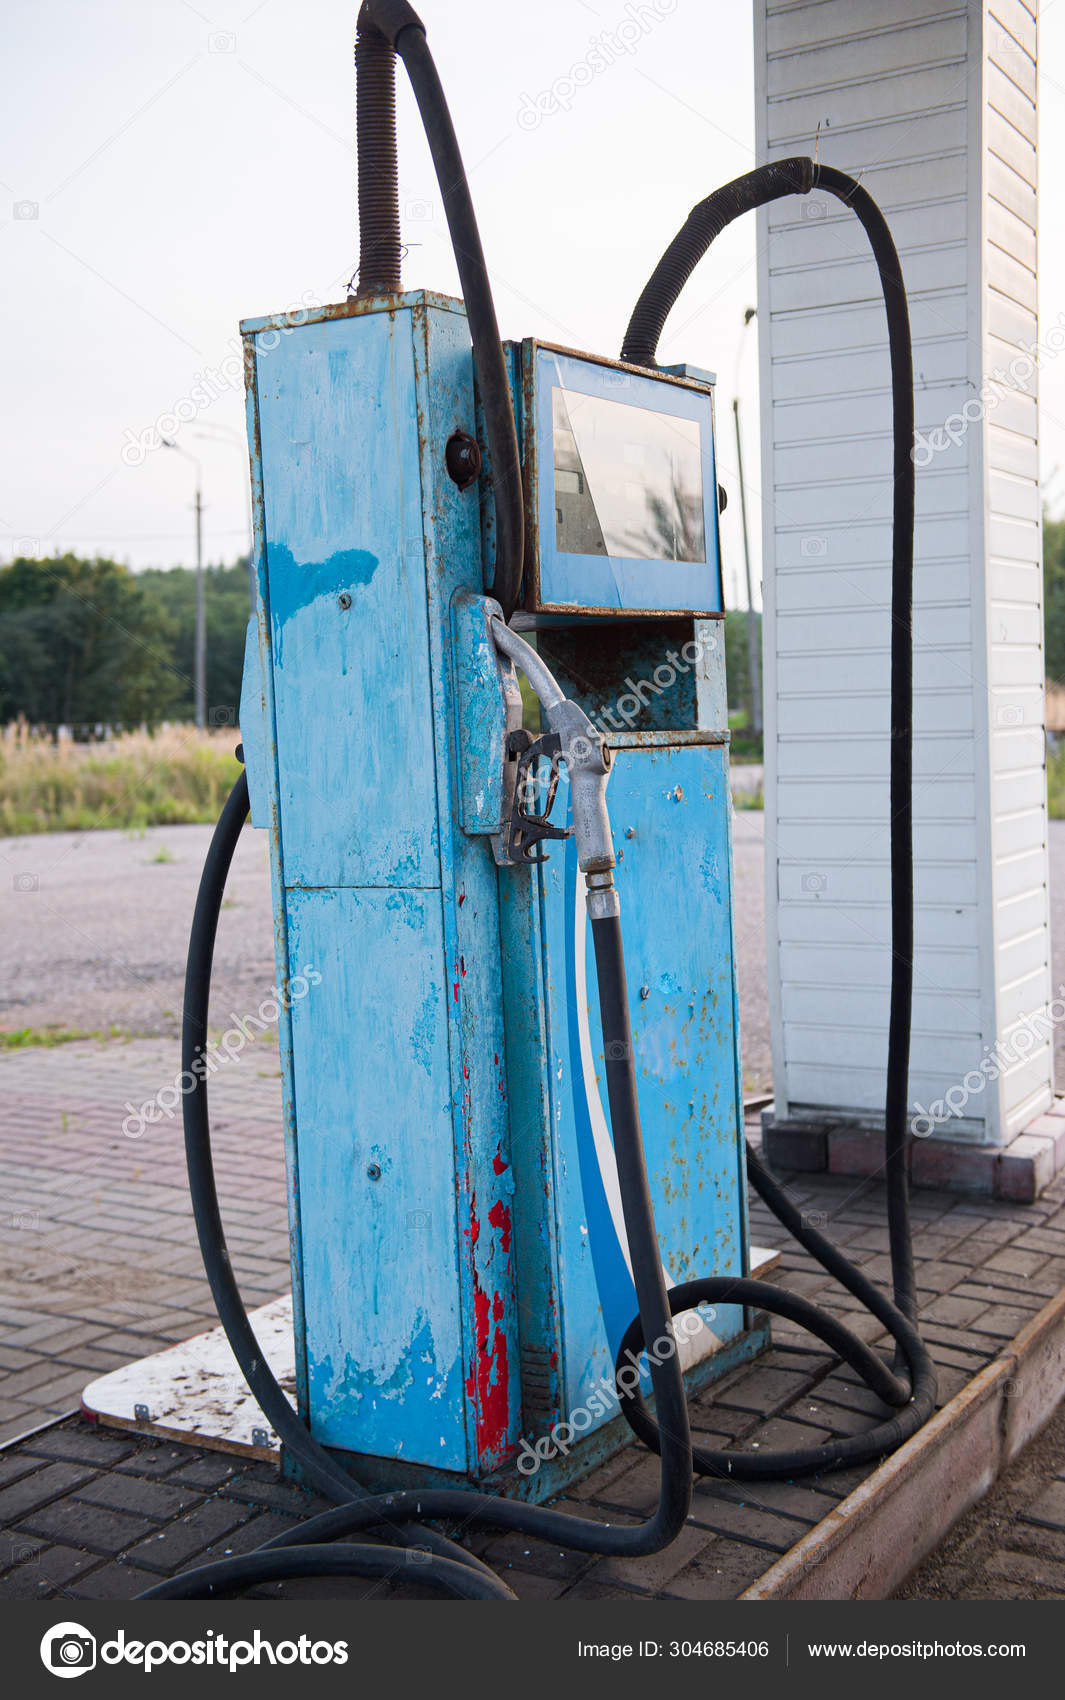 Old Abandoned Fuel Station Gas Station On Secondary Provincial Road Fuel Dispenser Is Broken Vintage Gasoline Column Oil Pollution Of The Earth Outdated Technology Stock Photo C Sergevo 304685406